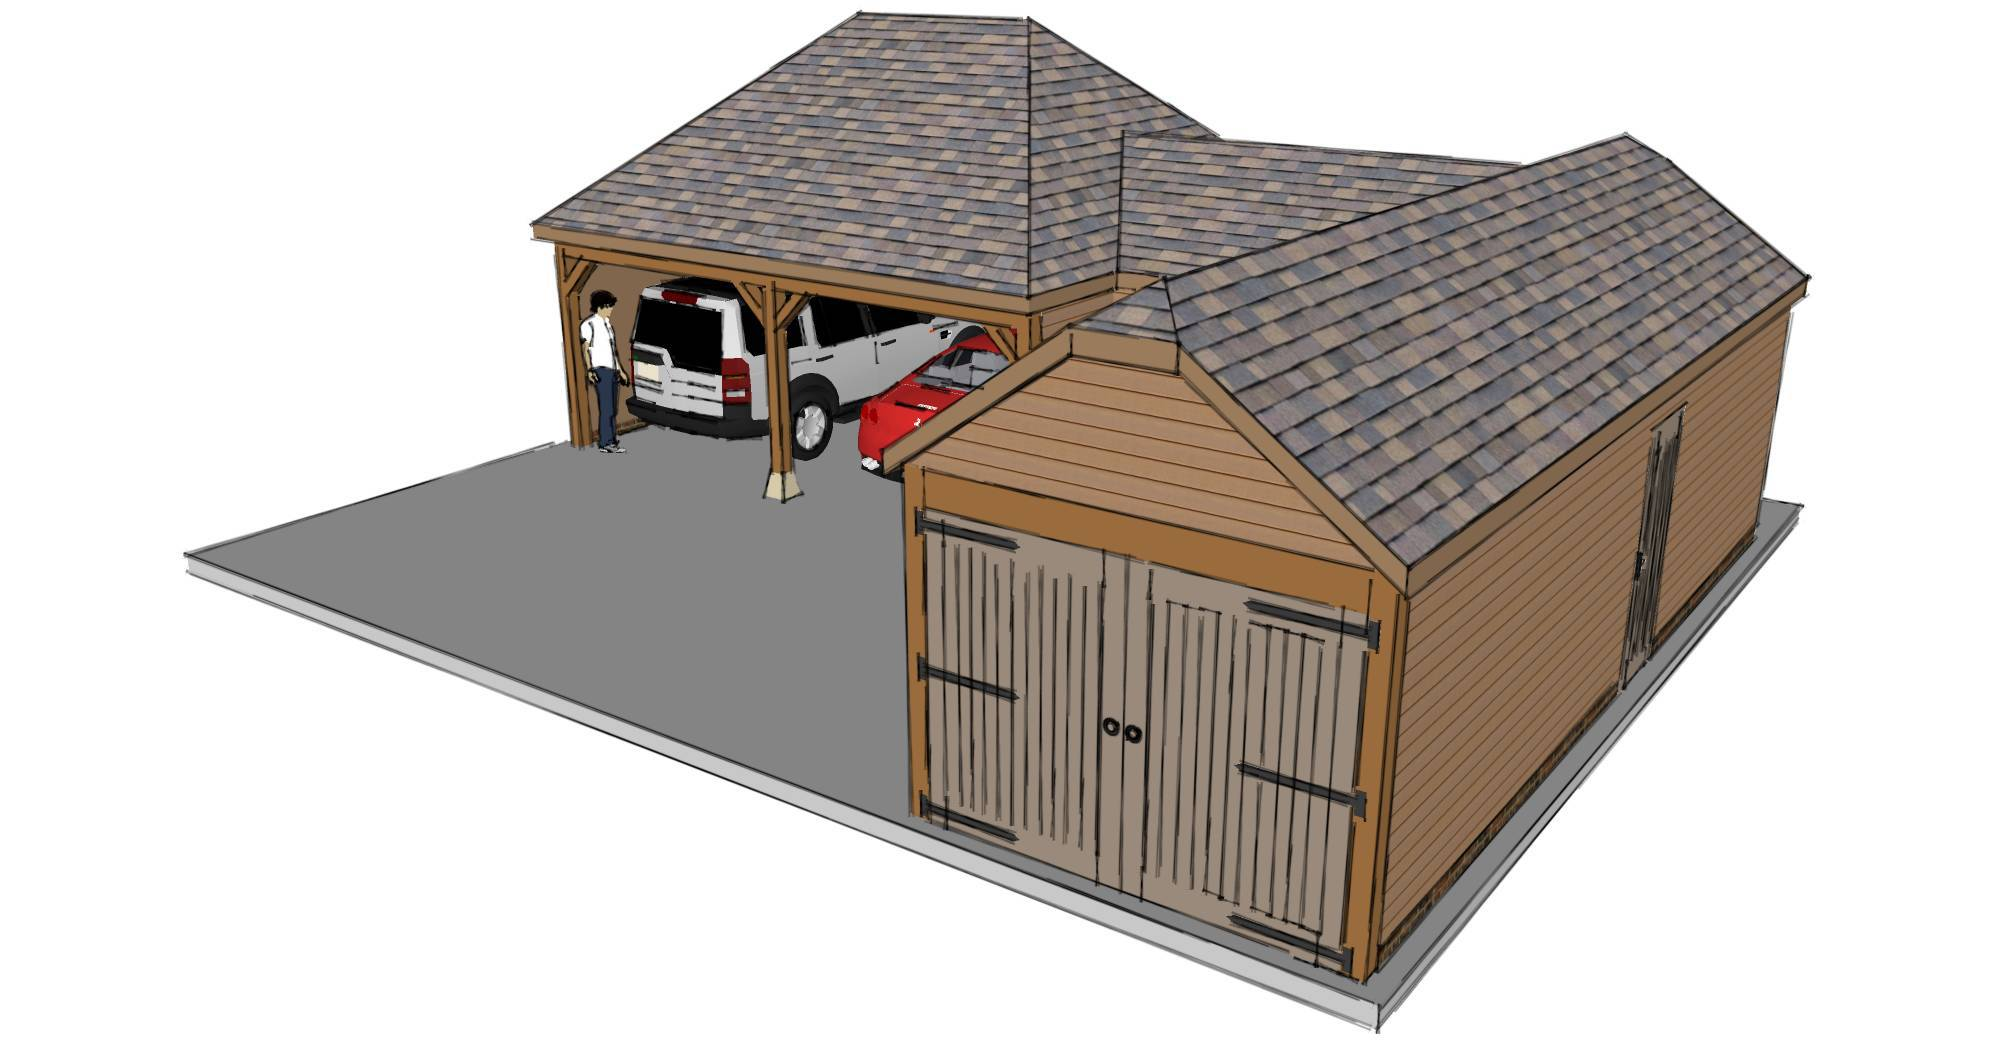 L shaped garage scheme the stable company for L shaped shed designs